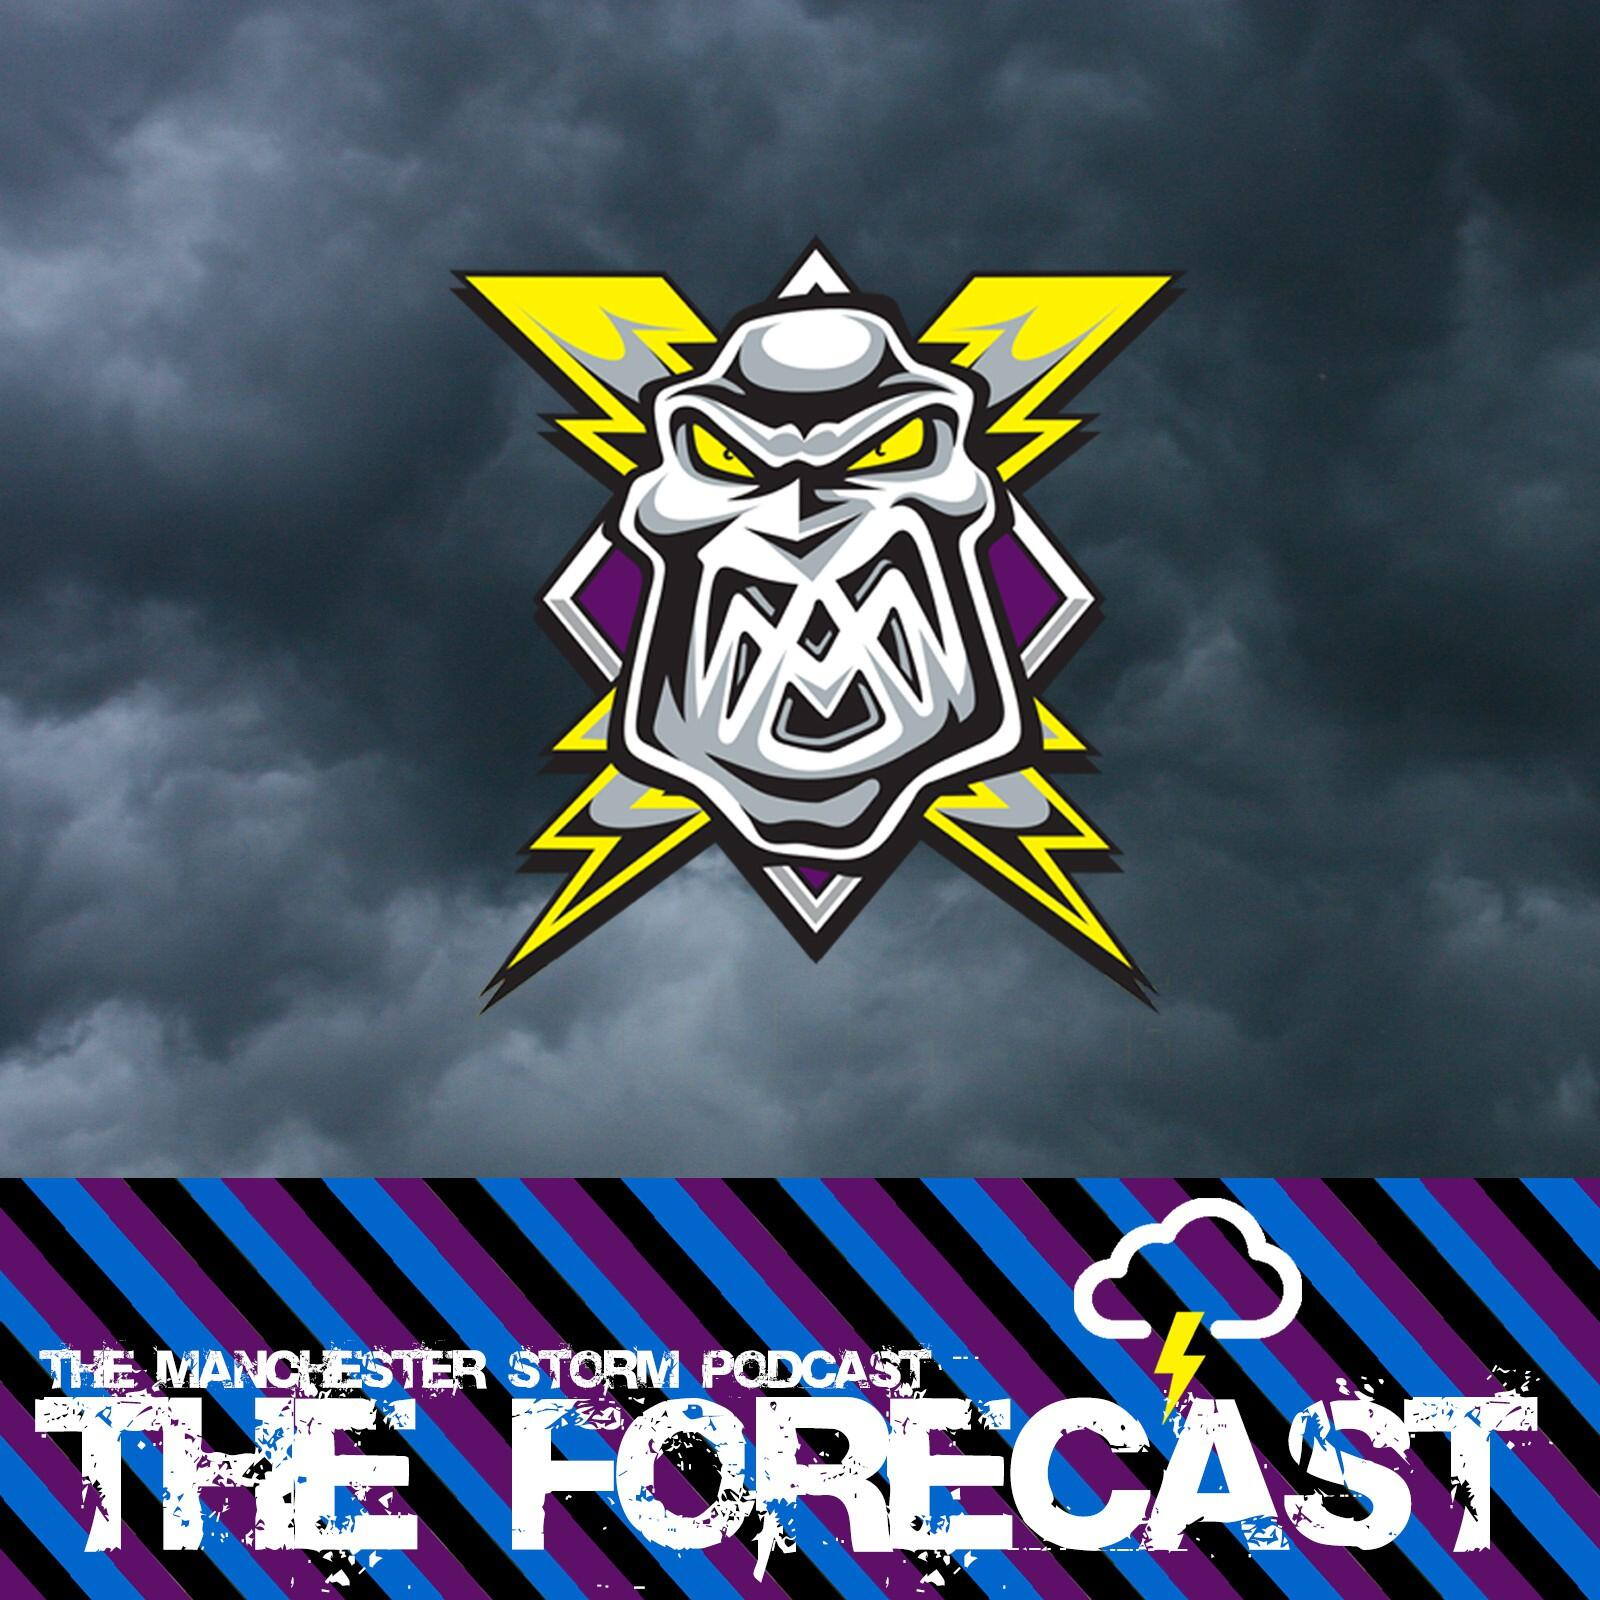 The Forecast - The Manchester Storm Podcast